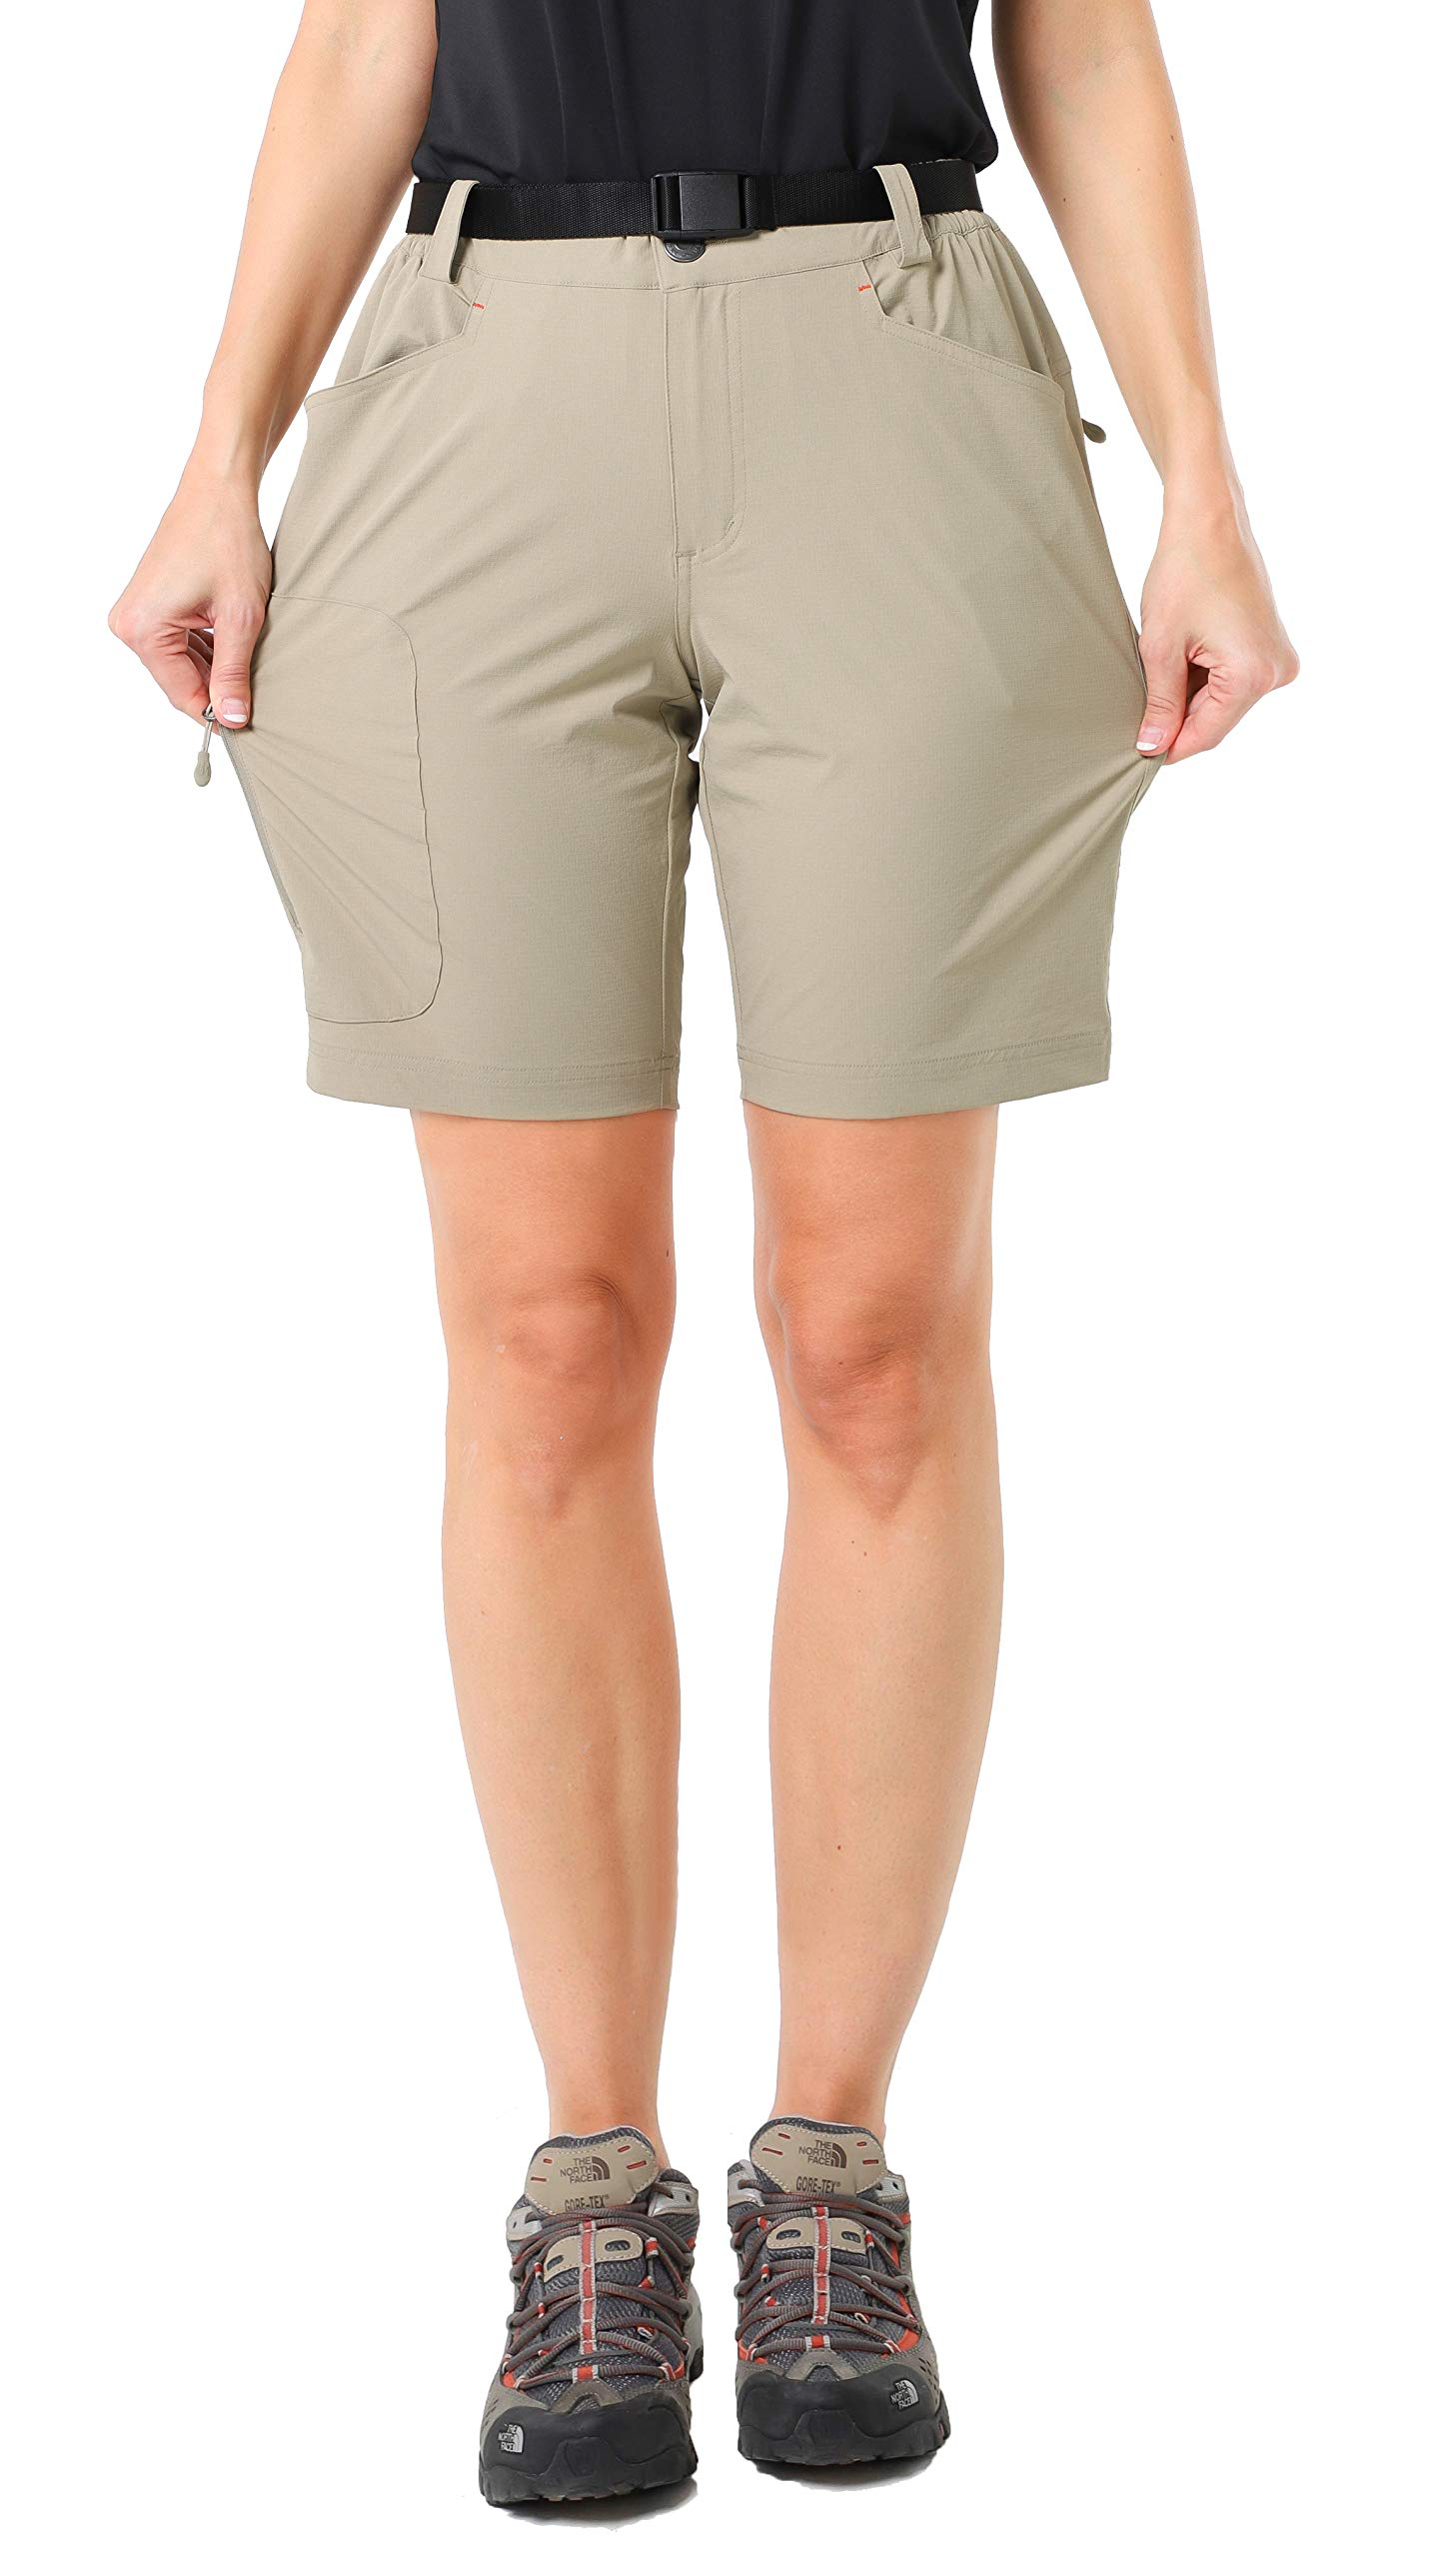 MIER Women's Stretchy Hiking Shorts Lightweight Quick Dry Cargo Shorts with 5 Pockets, Water Resistant(Exclude Belt